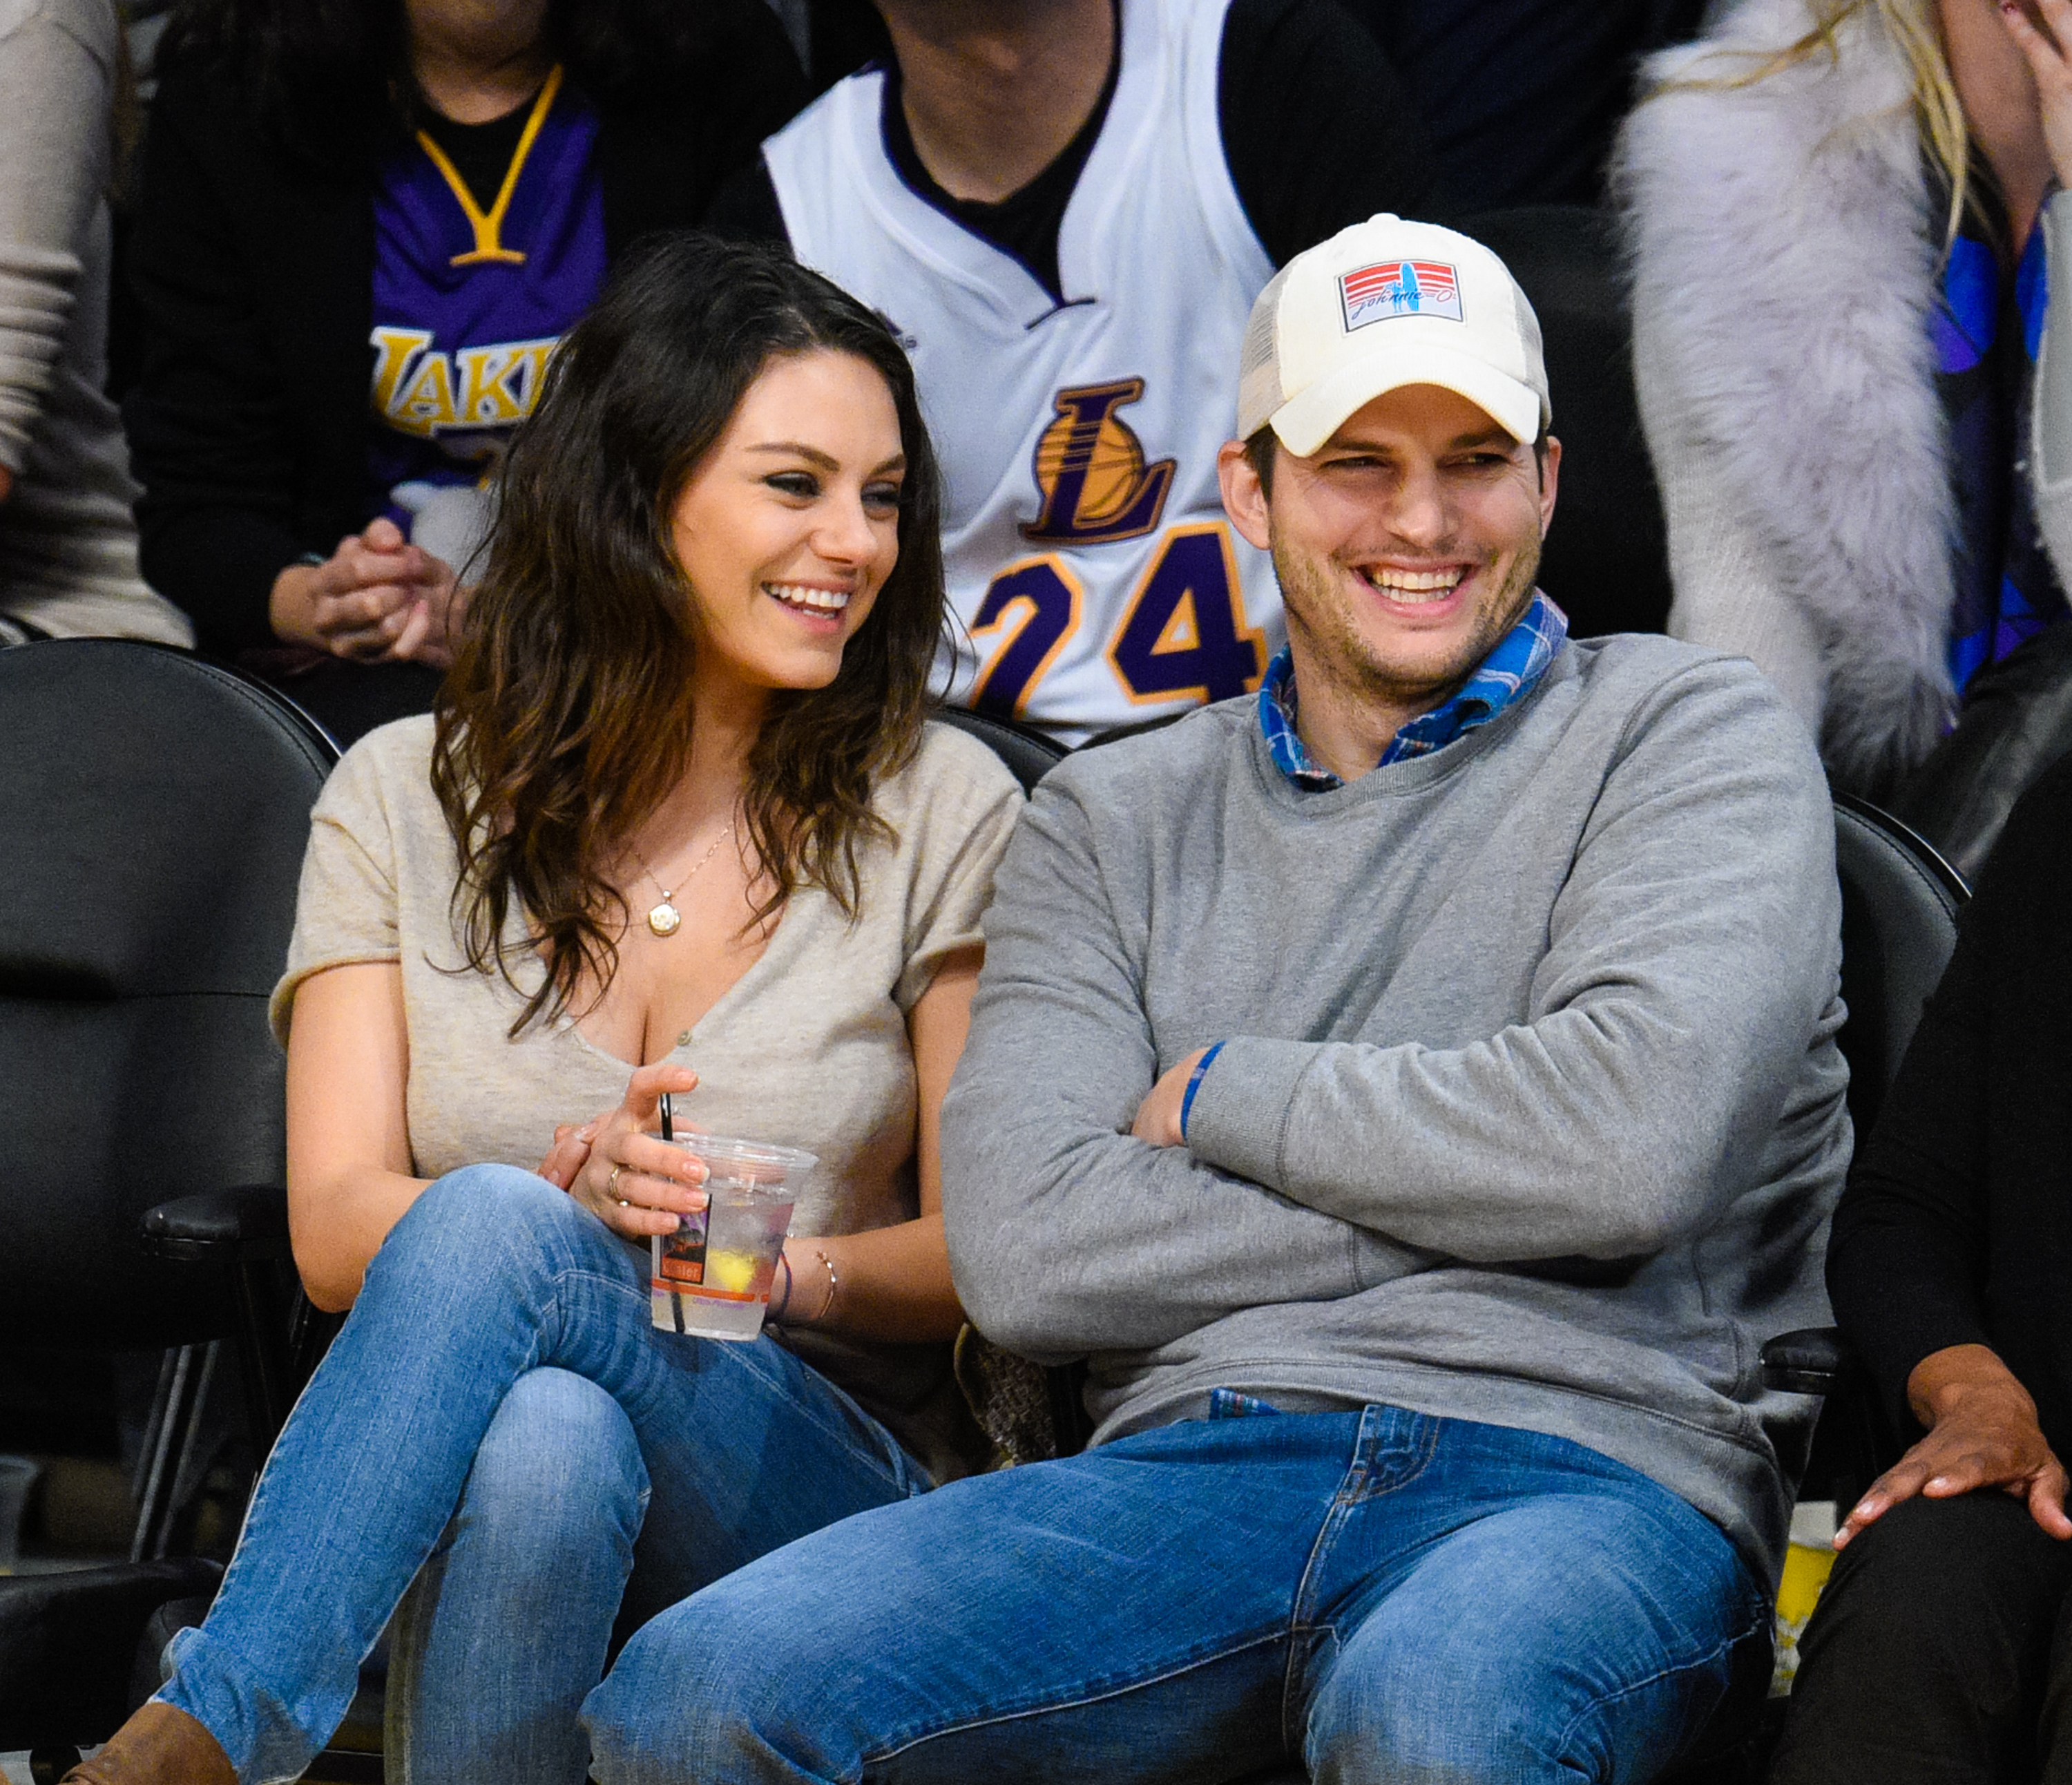 Mila Kunis (L) and Ashton Kutcher attend a basketball game between the Oklahoma City Thunder and the Los Angeles Lakers at Staples Center on December 19, 2014 in Los Angeles, California.